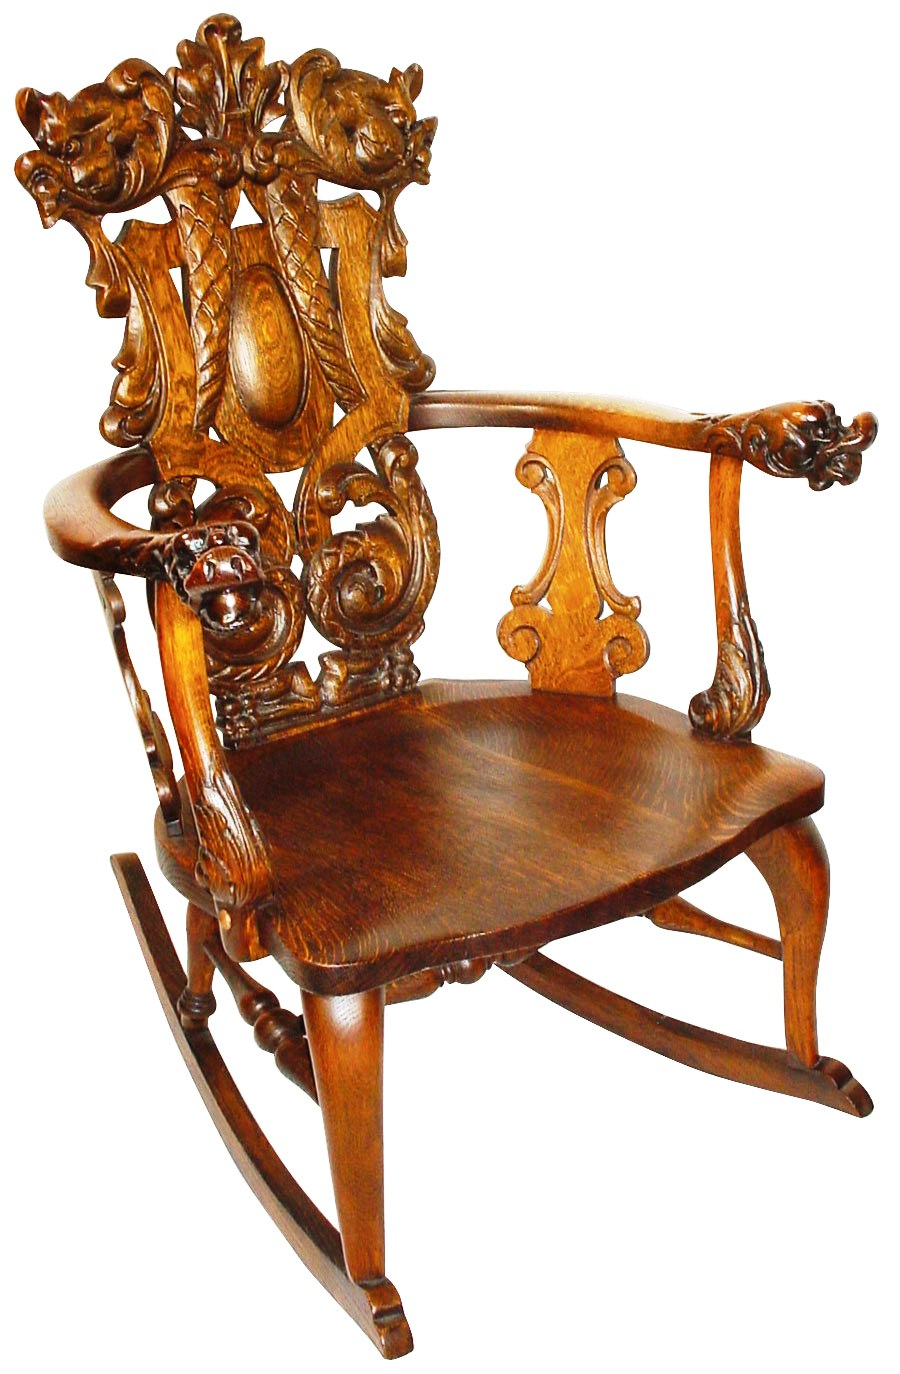 Best Chair Company Recliner ... Company. When they are identified for what they are, these ornate